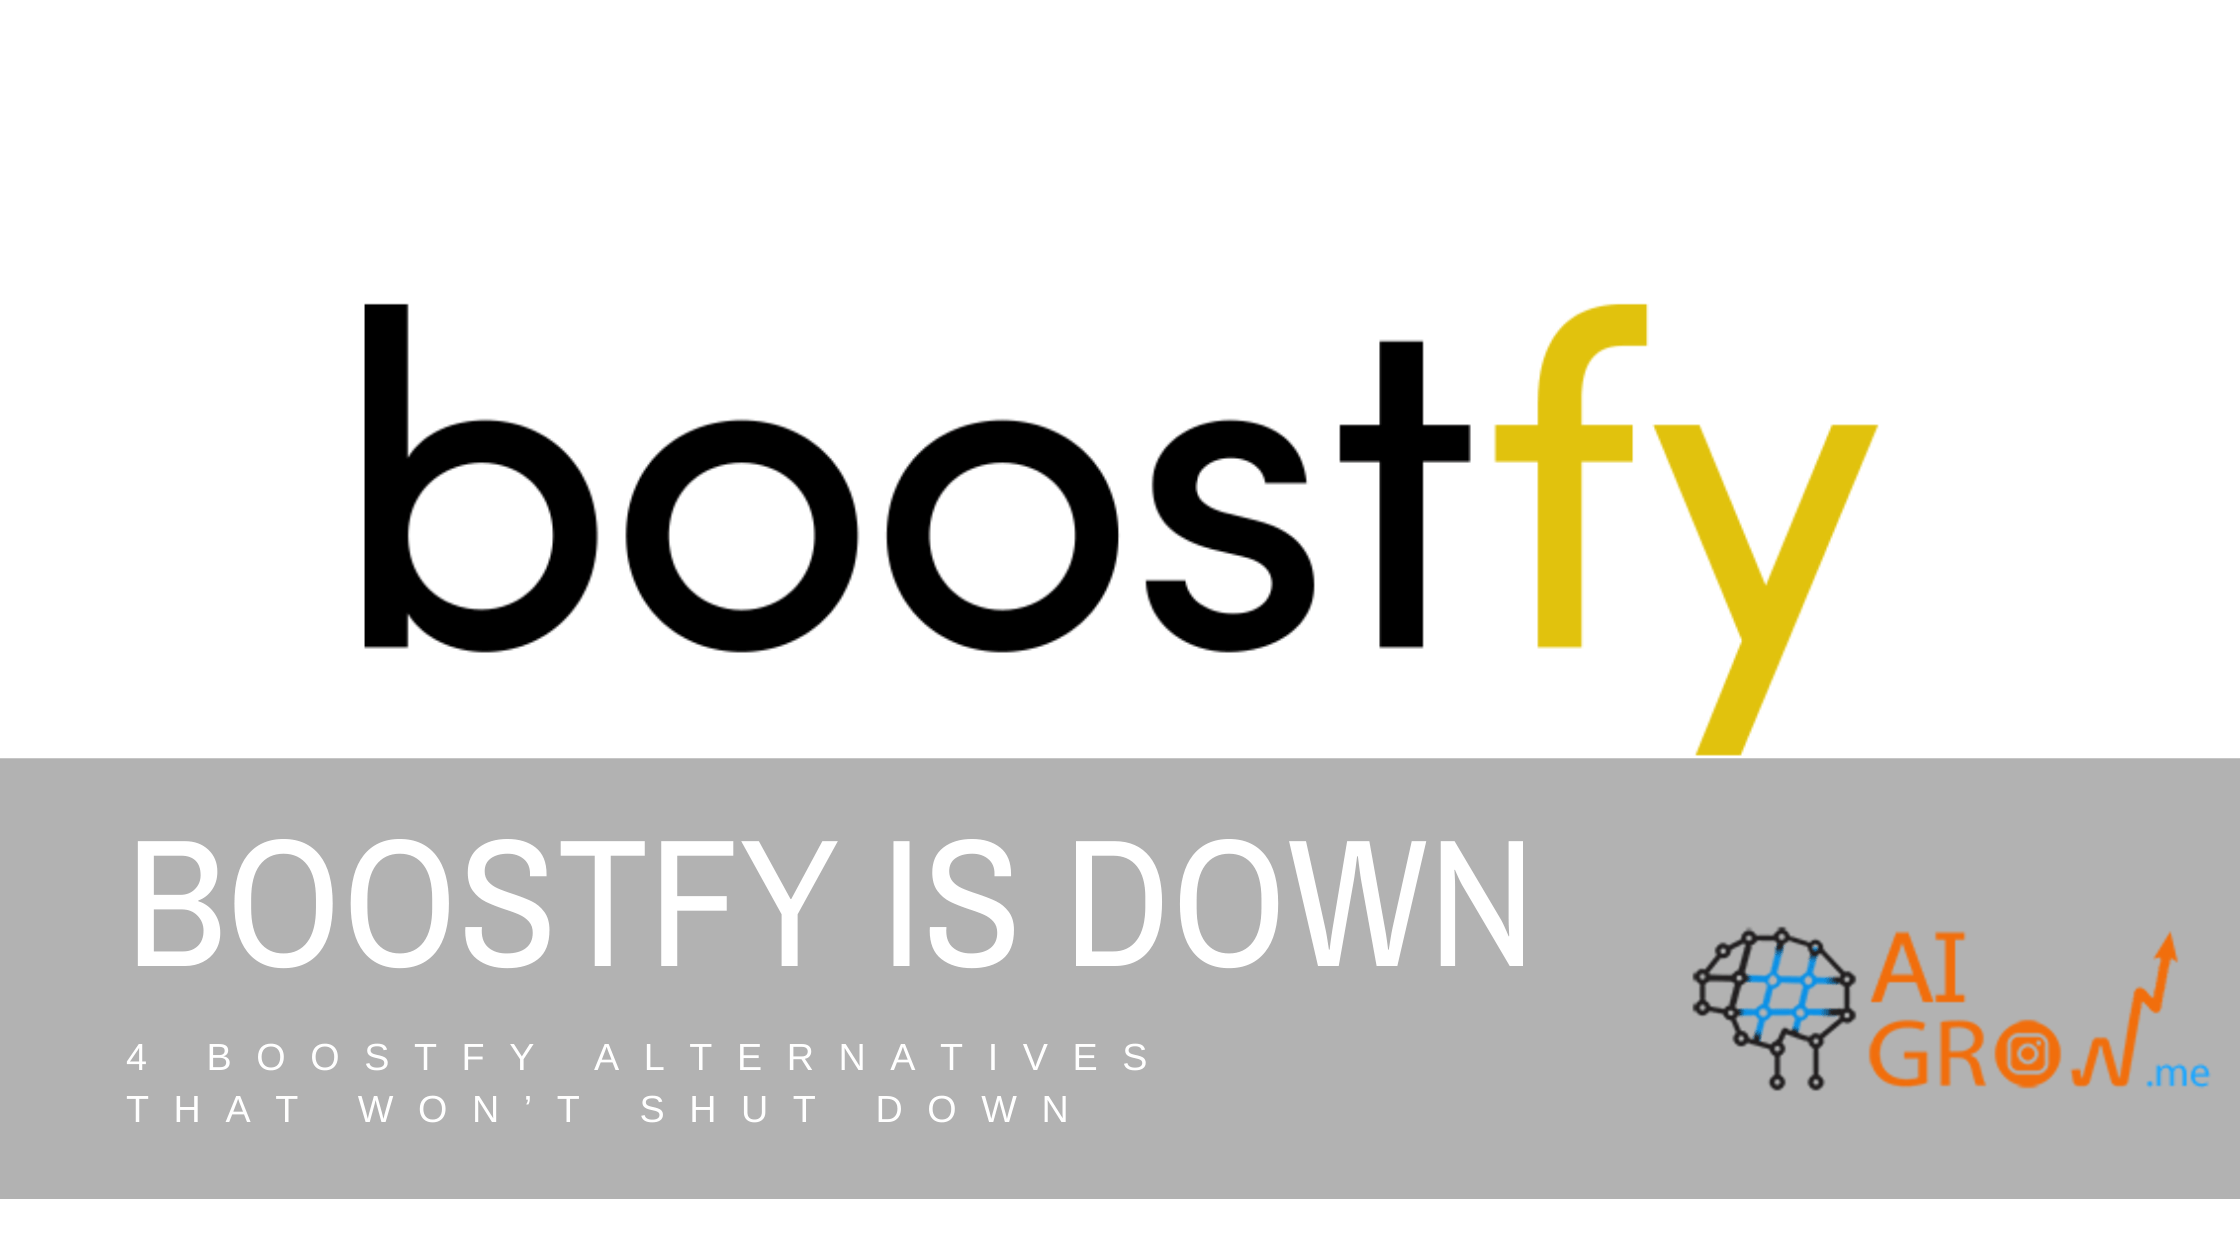 Boostfy is down: 4 Boostfy alternatives that won't shut down